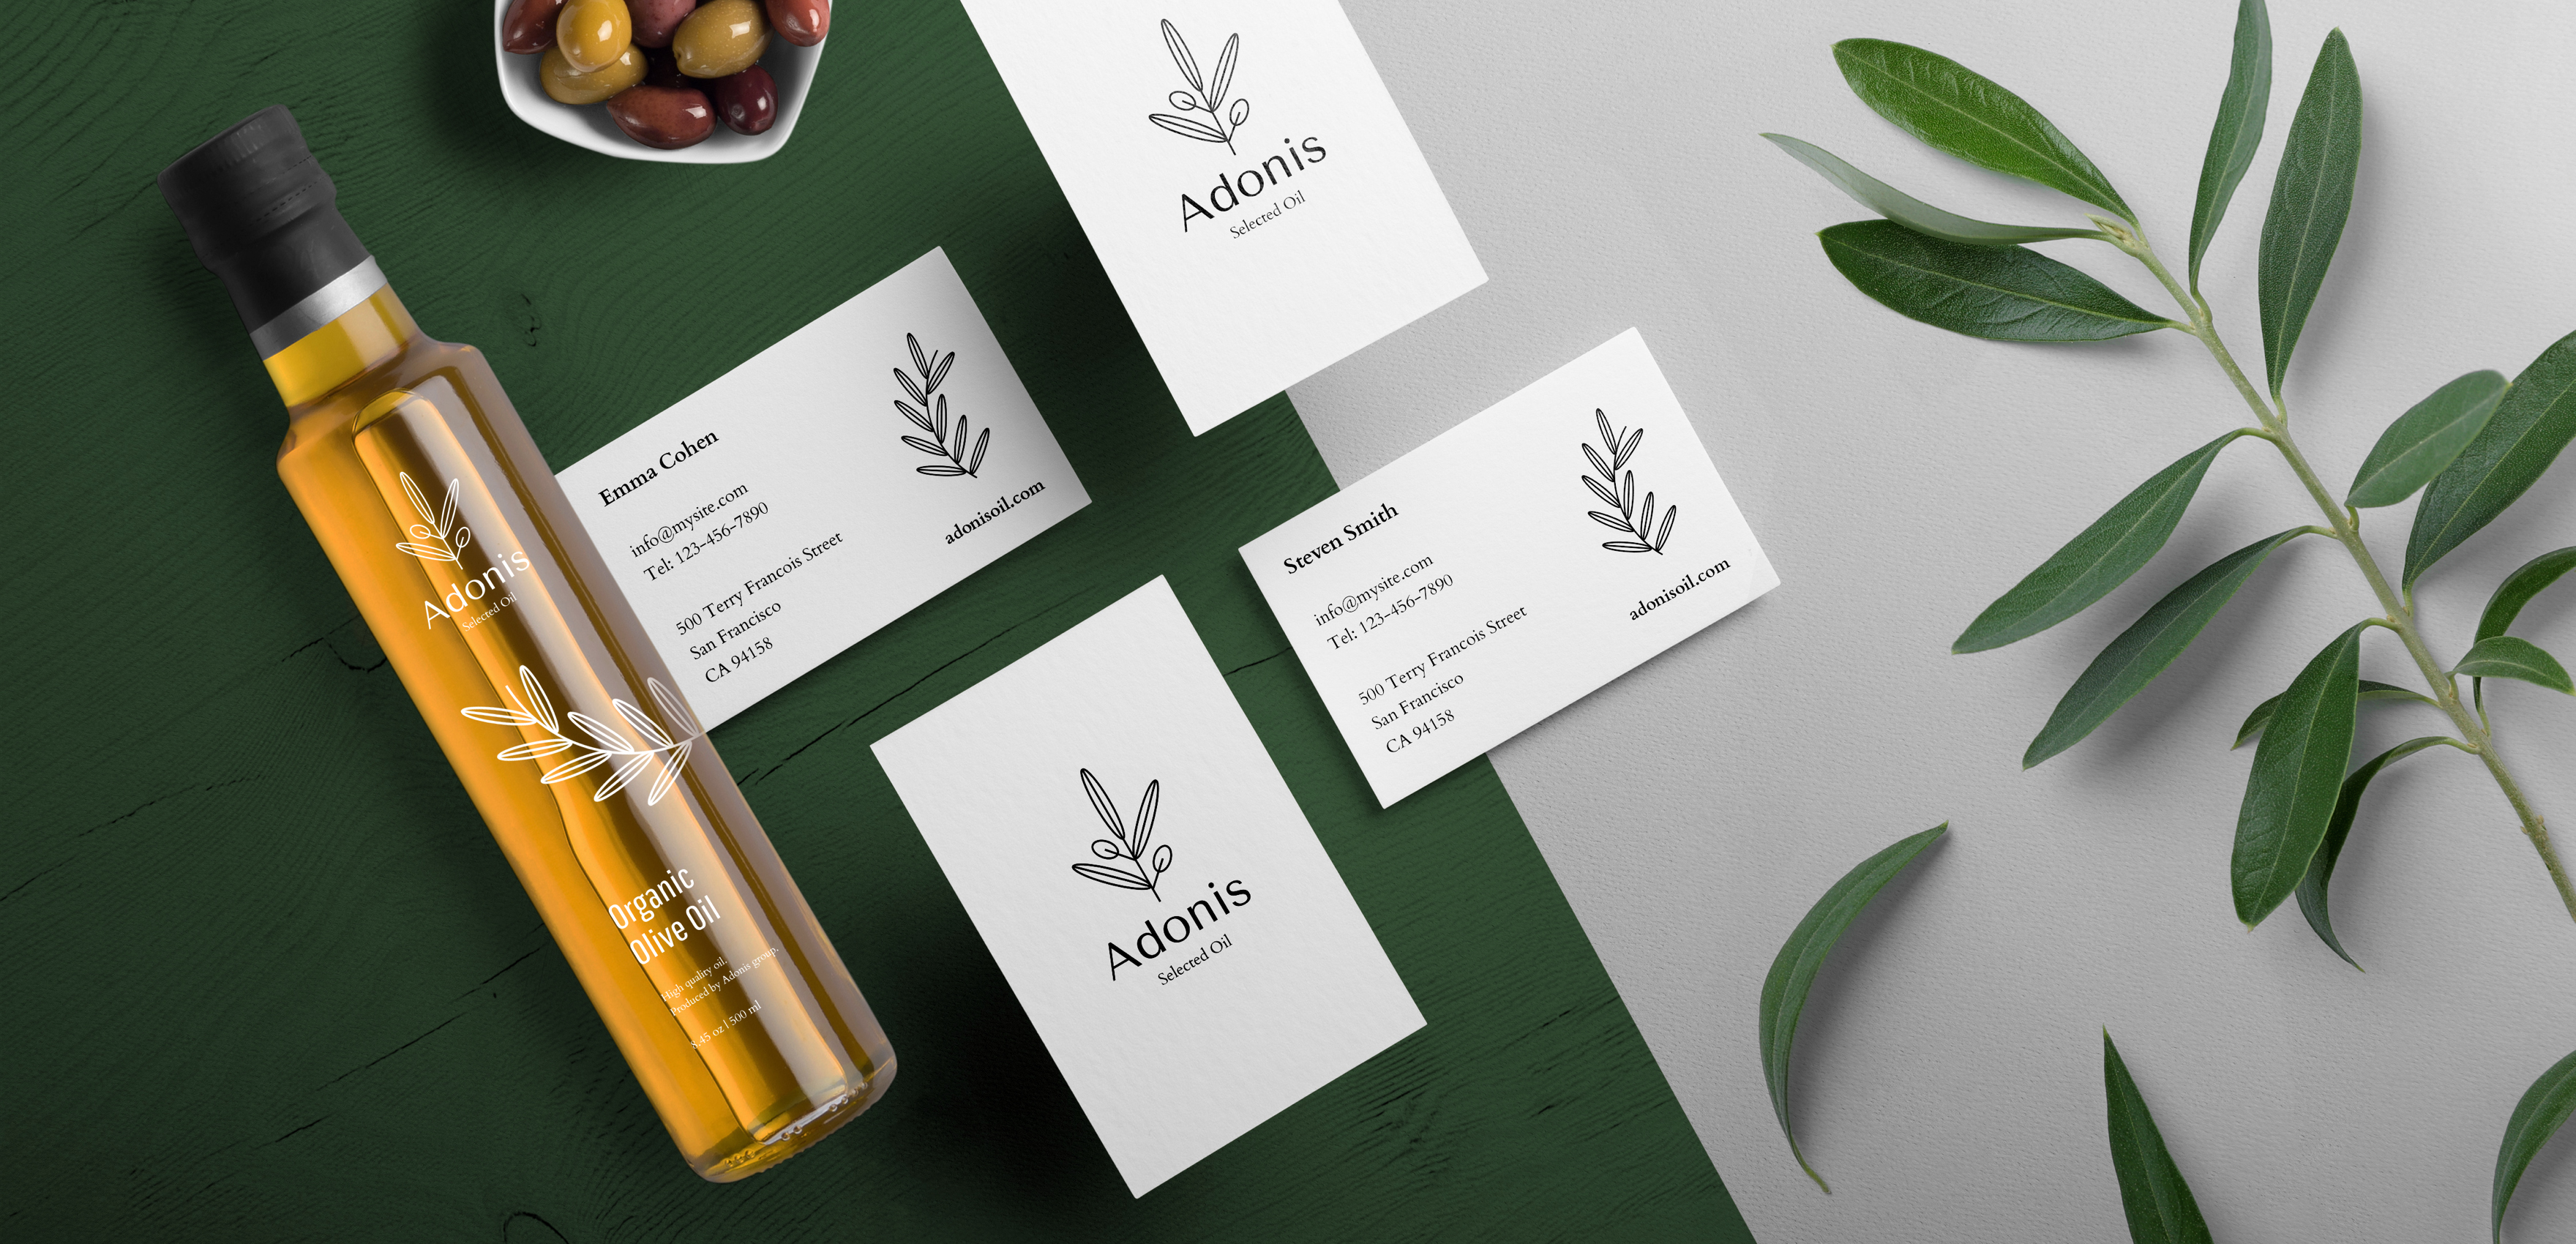 Brand Identity - Product Packaging Design